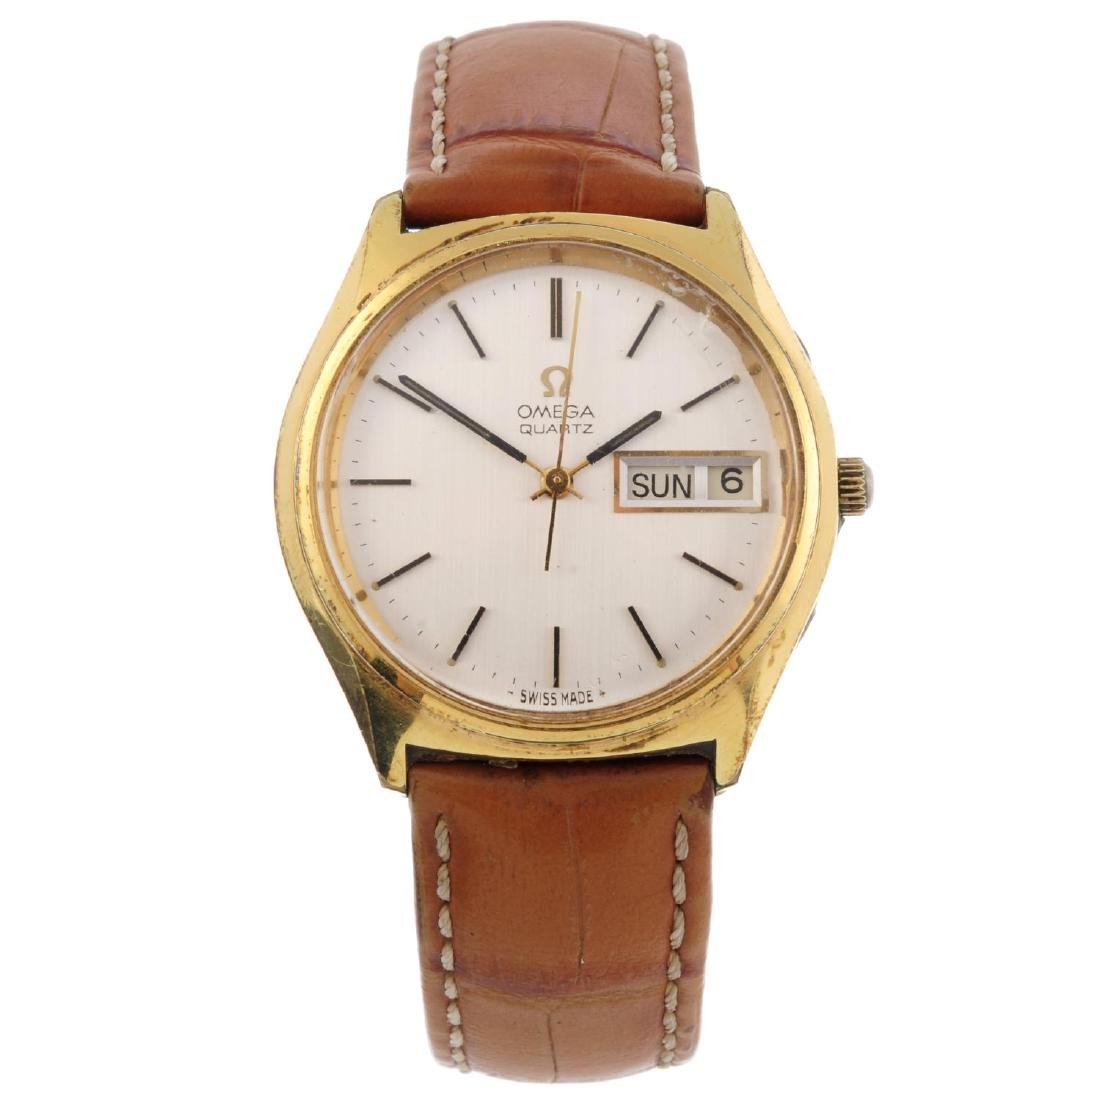 OMEGA - a gentleman's wrist watch. Gold plated case